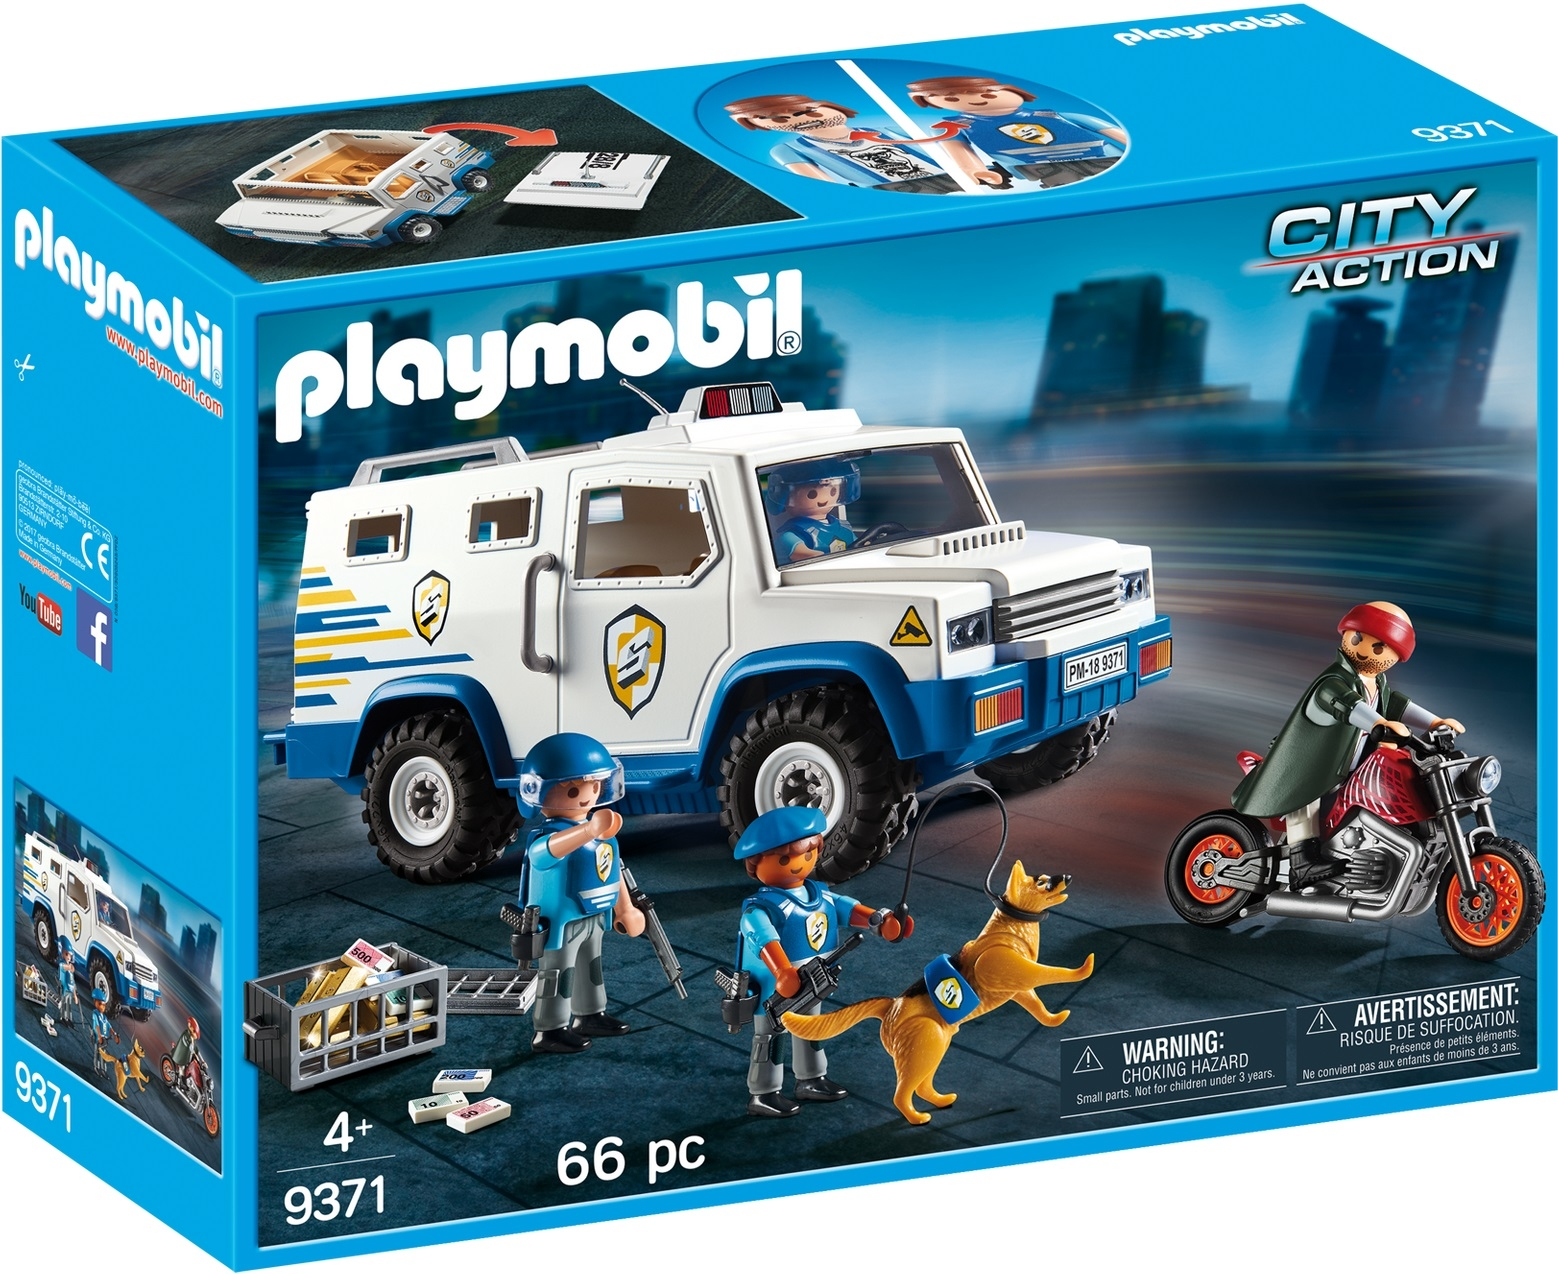 Masina de politie blindata playmobil city action